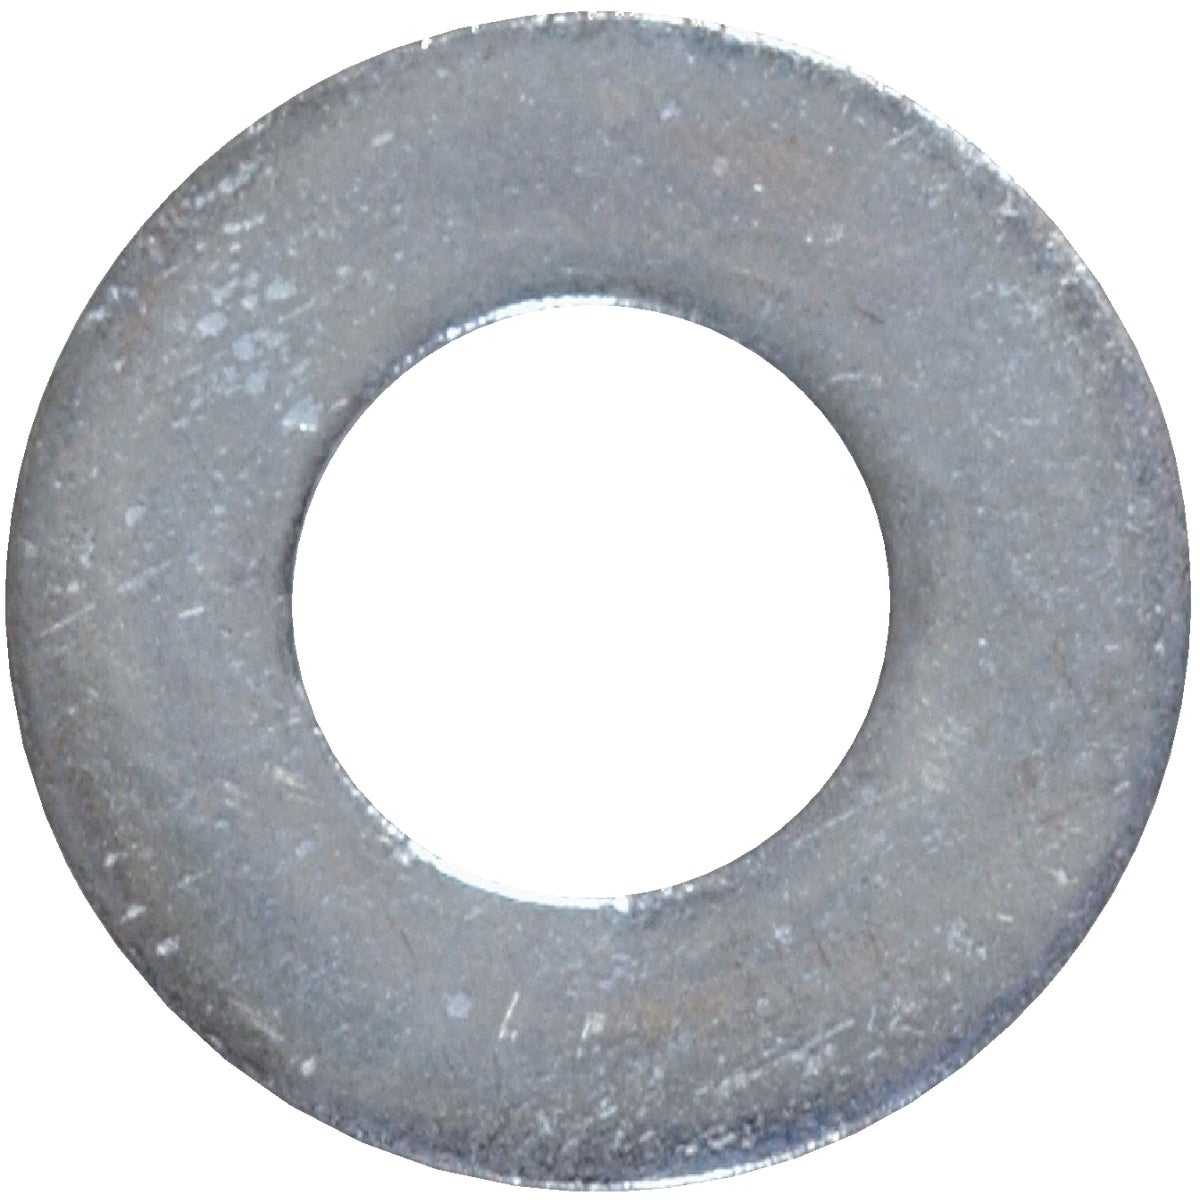 "5/8"" USS FLAT WASHER - 811074 by Hillman Fastener"